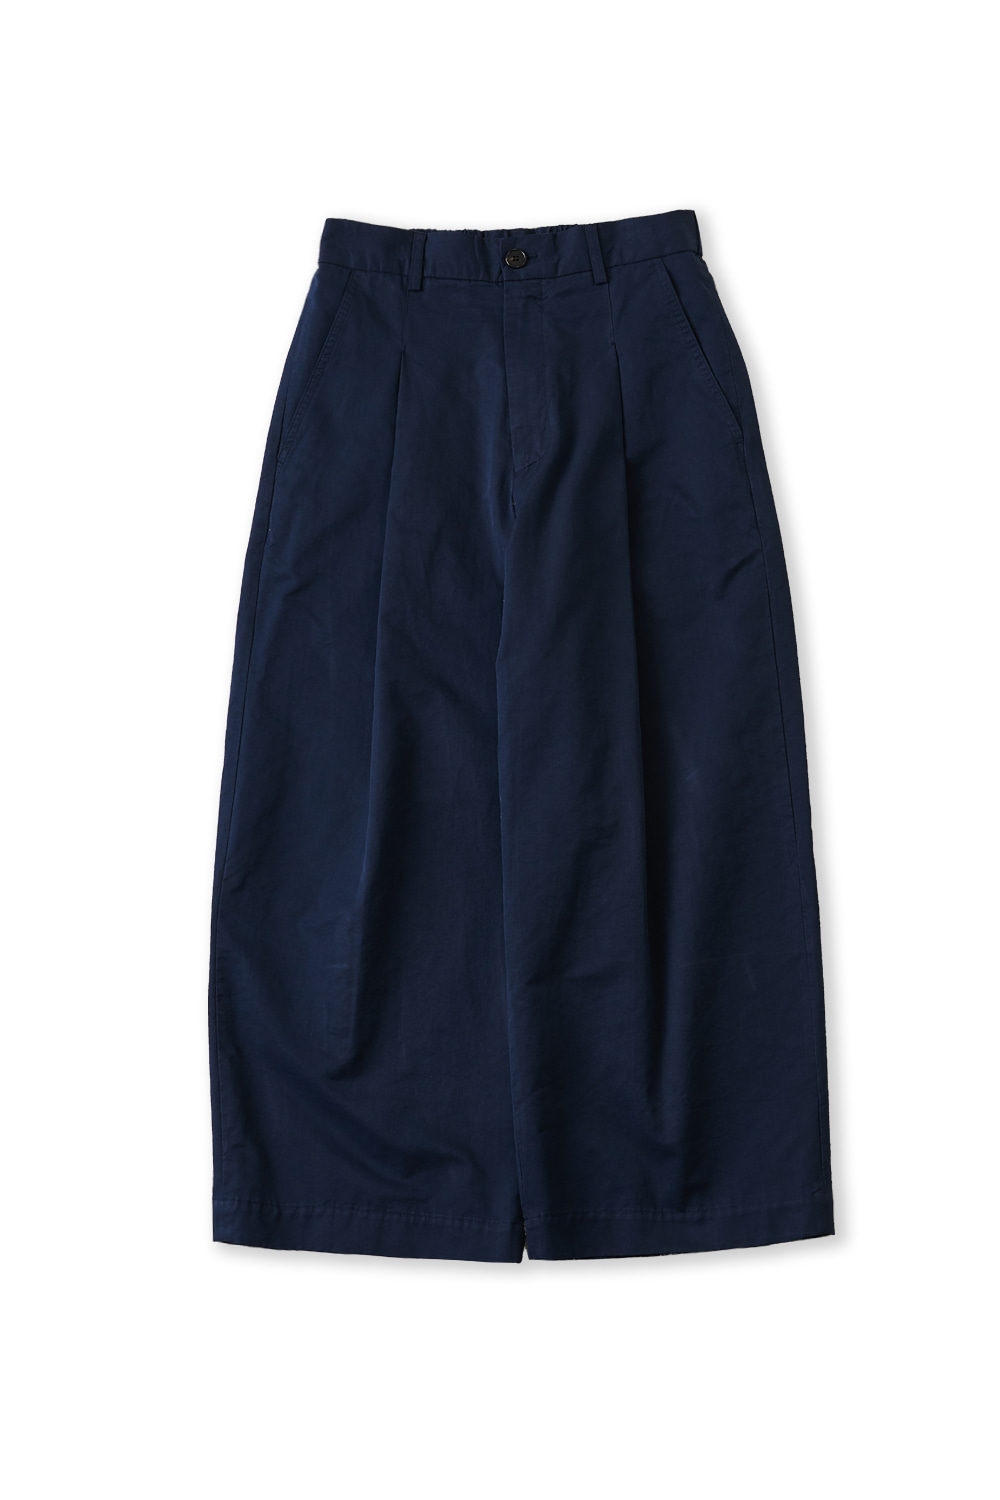 PERENN퍼렌 curved wide trousers_navy